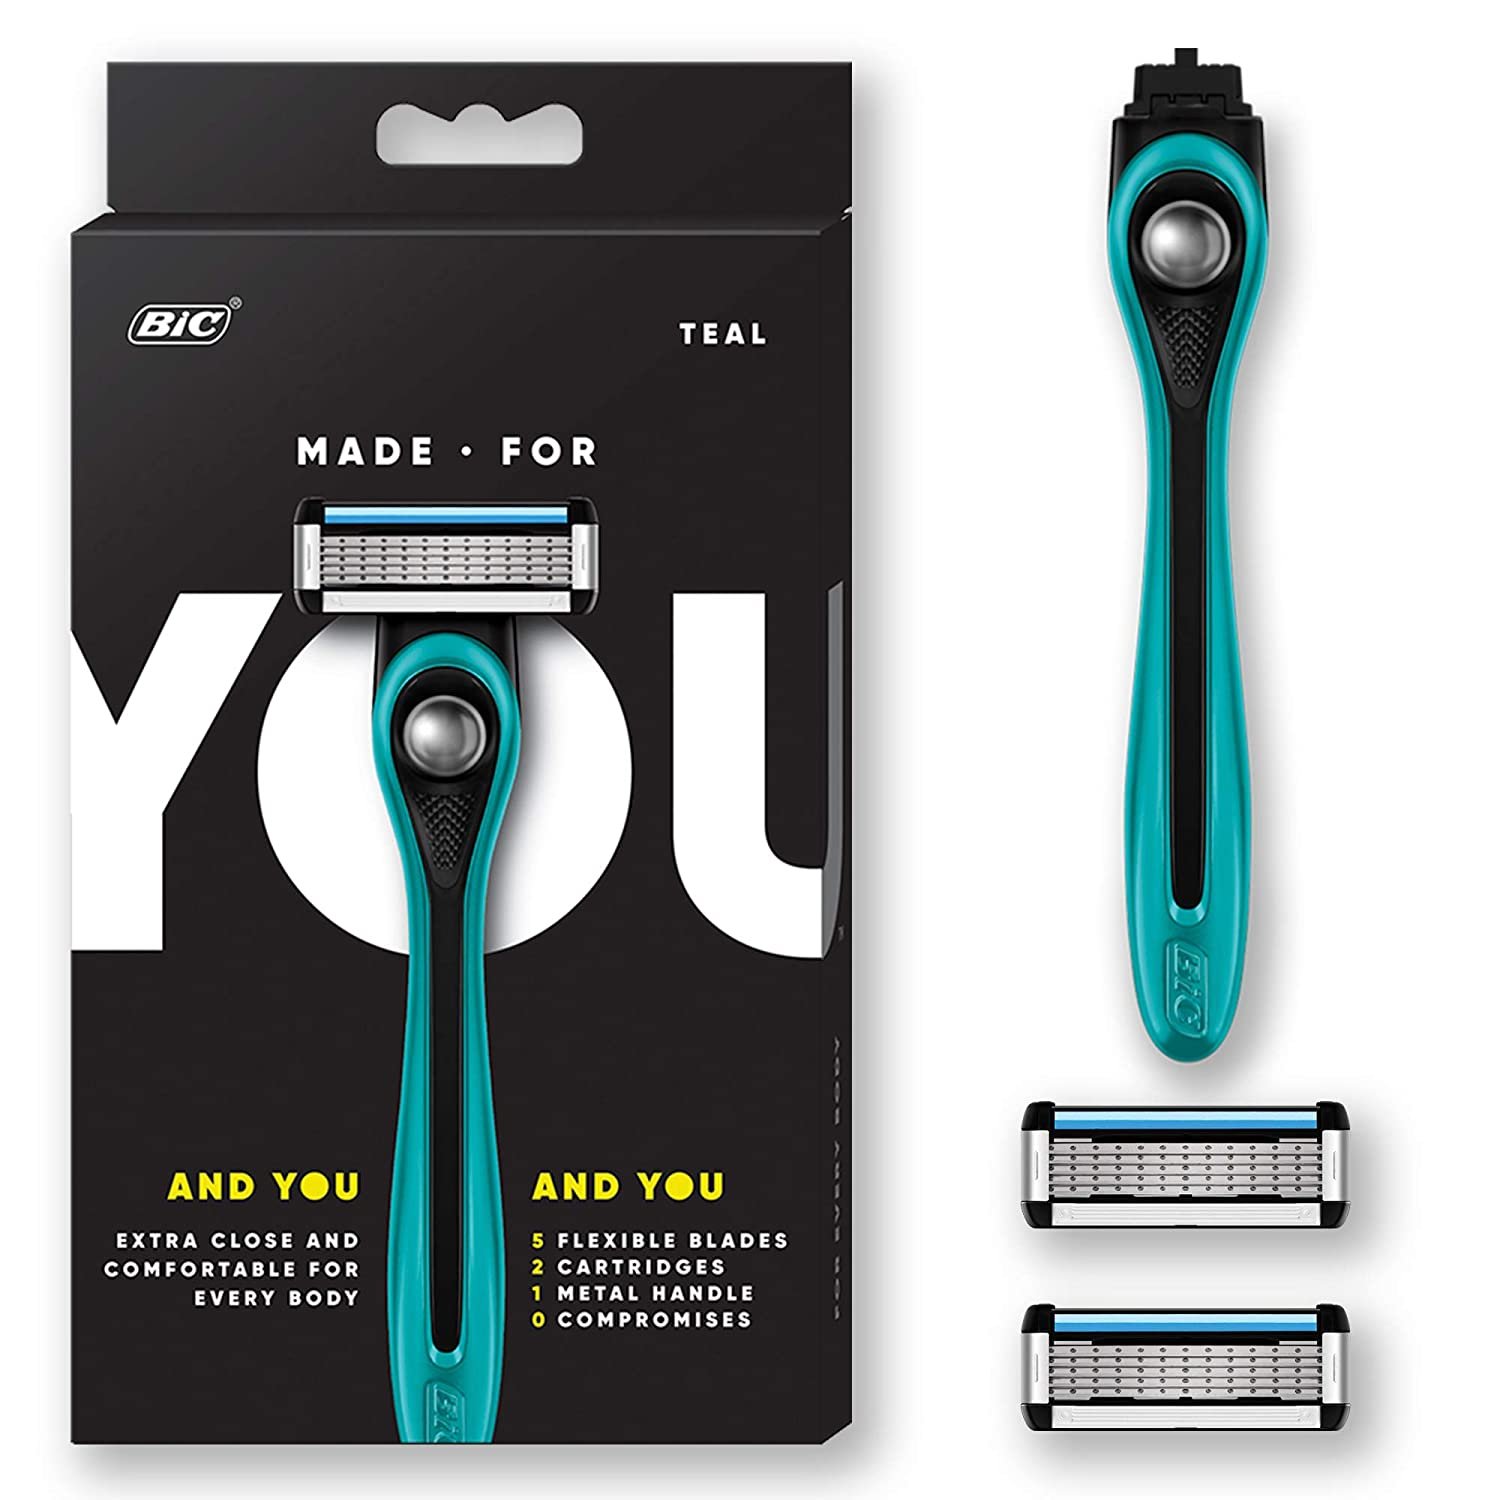 Made For YOU by BIC Shaving Razor Blades for Every Body - Men & Women, with 2 Cartridge Refills - 5-Blade Razors for a Smooth Close Shave & Hair Removal, TEAL, Kit